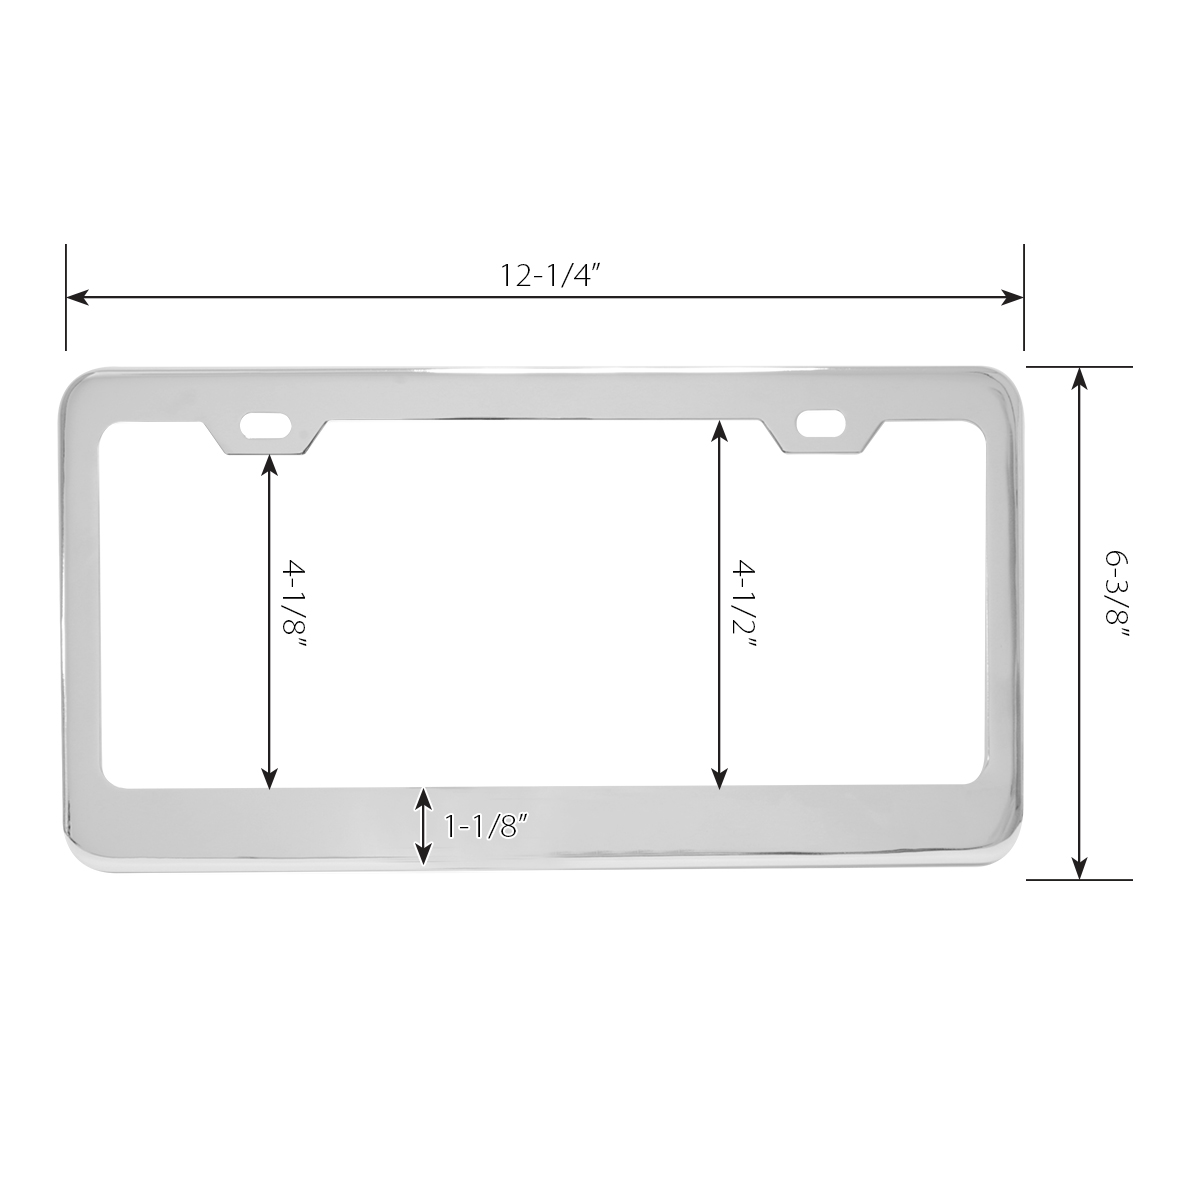 Plain Stainless Steel 2 Hole License Plate Frame - Measurements